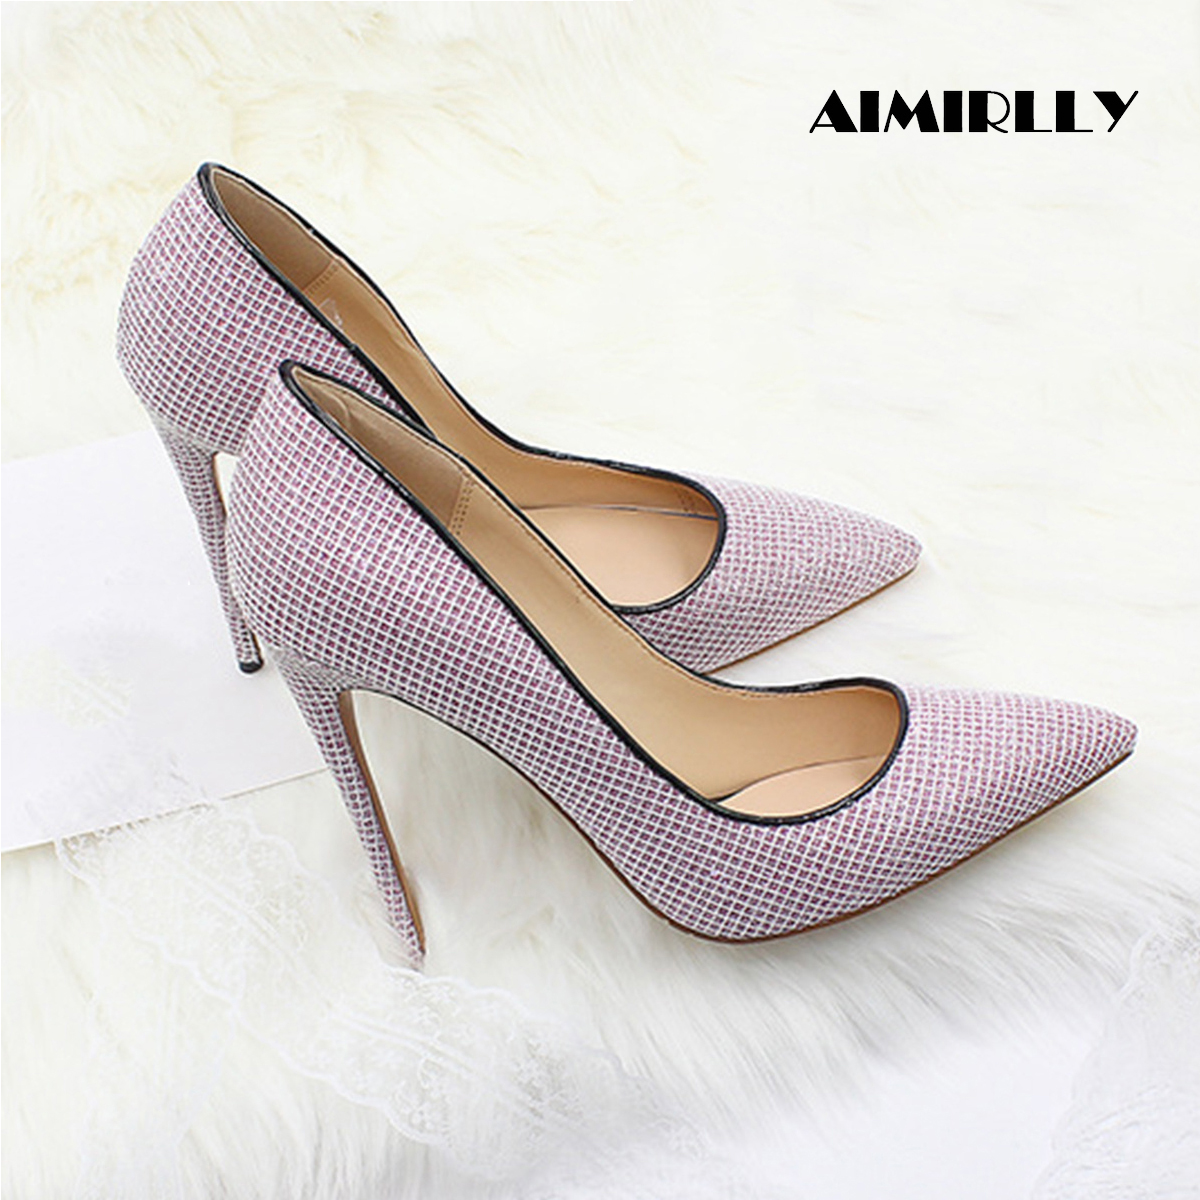 2019 Women Shoes Pointed Toe High Heels Pumps Glitter Stilettos Spring Summer Party Wedding Shoes Sexy